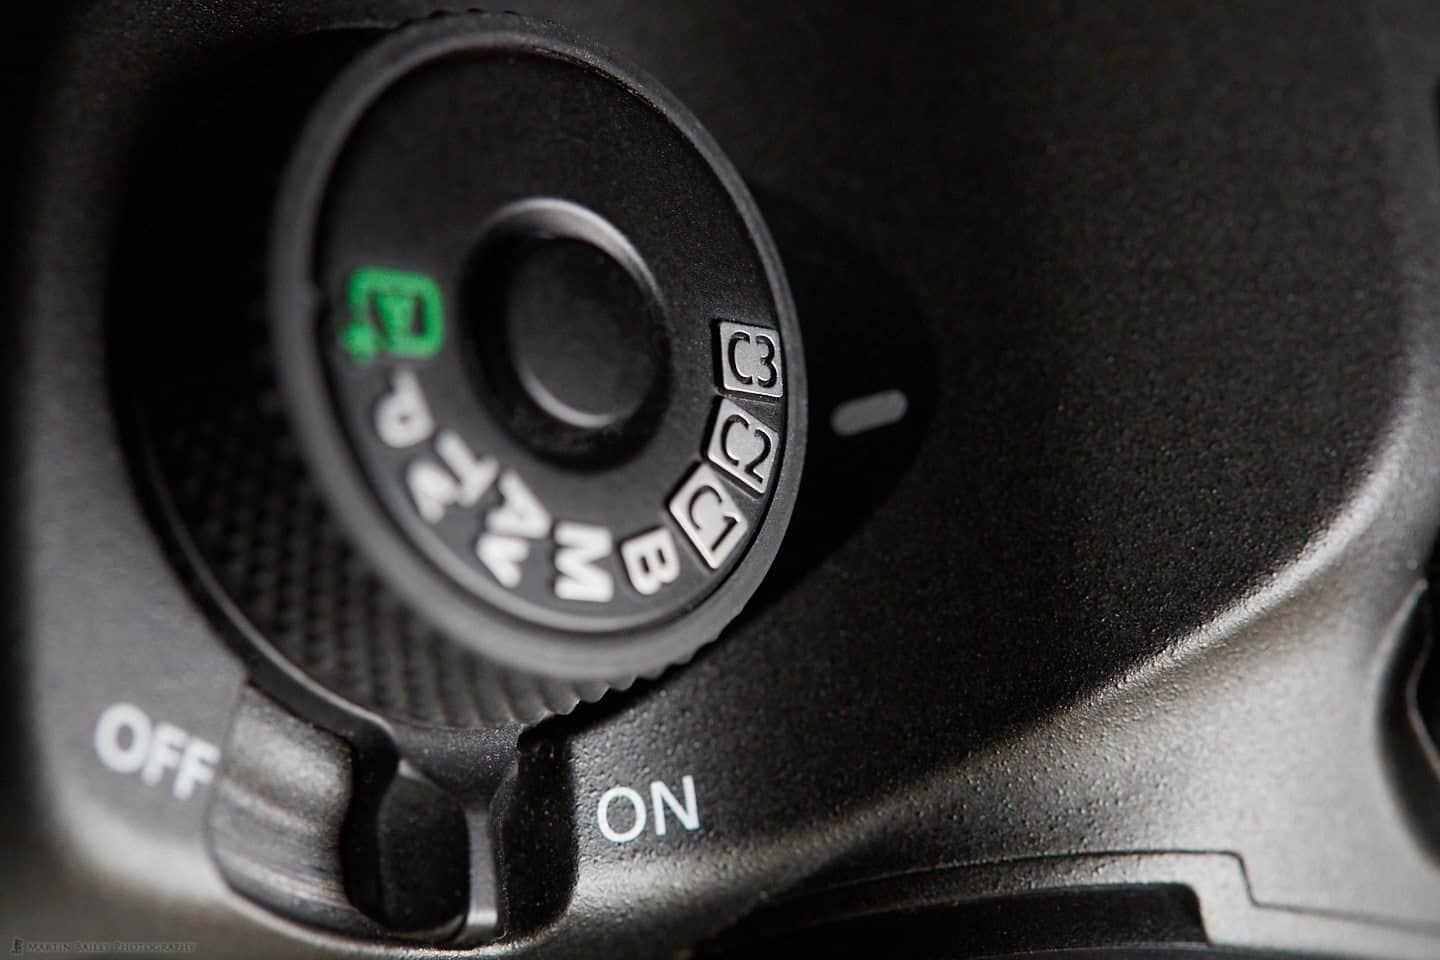 Canon EOS 5Ds R Mode Dial